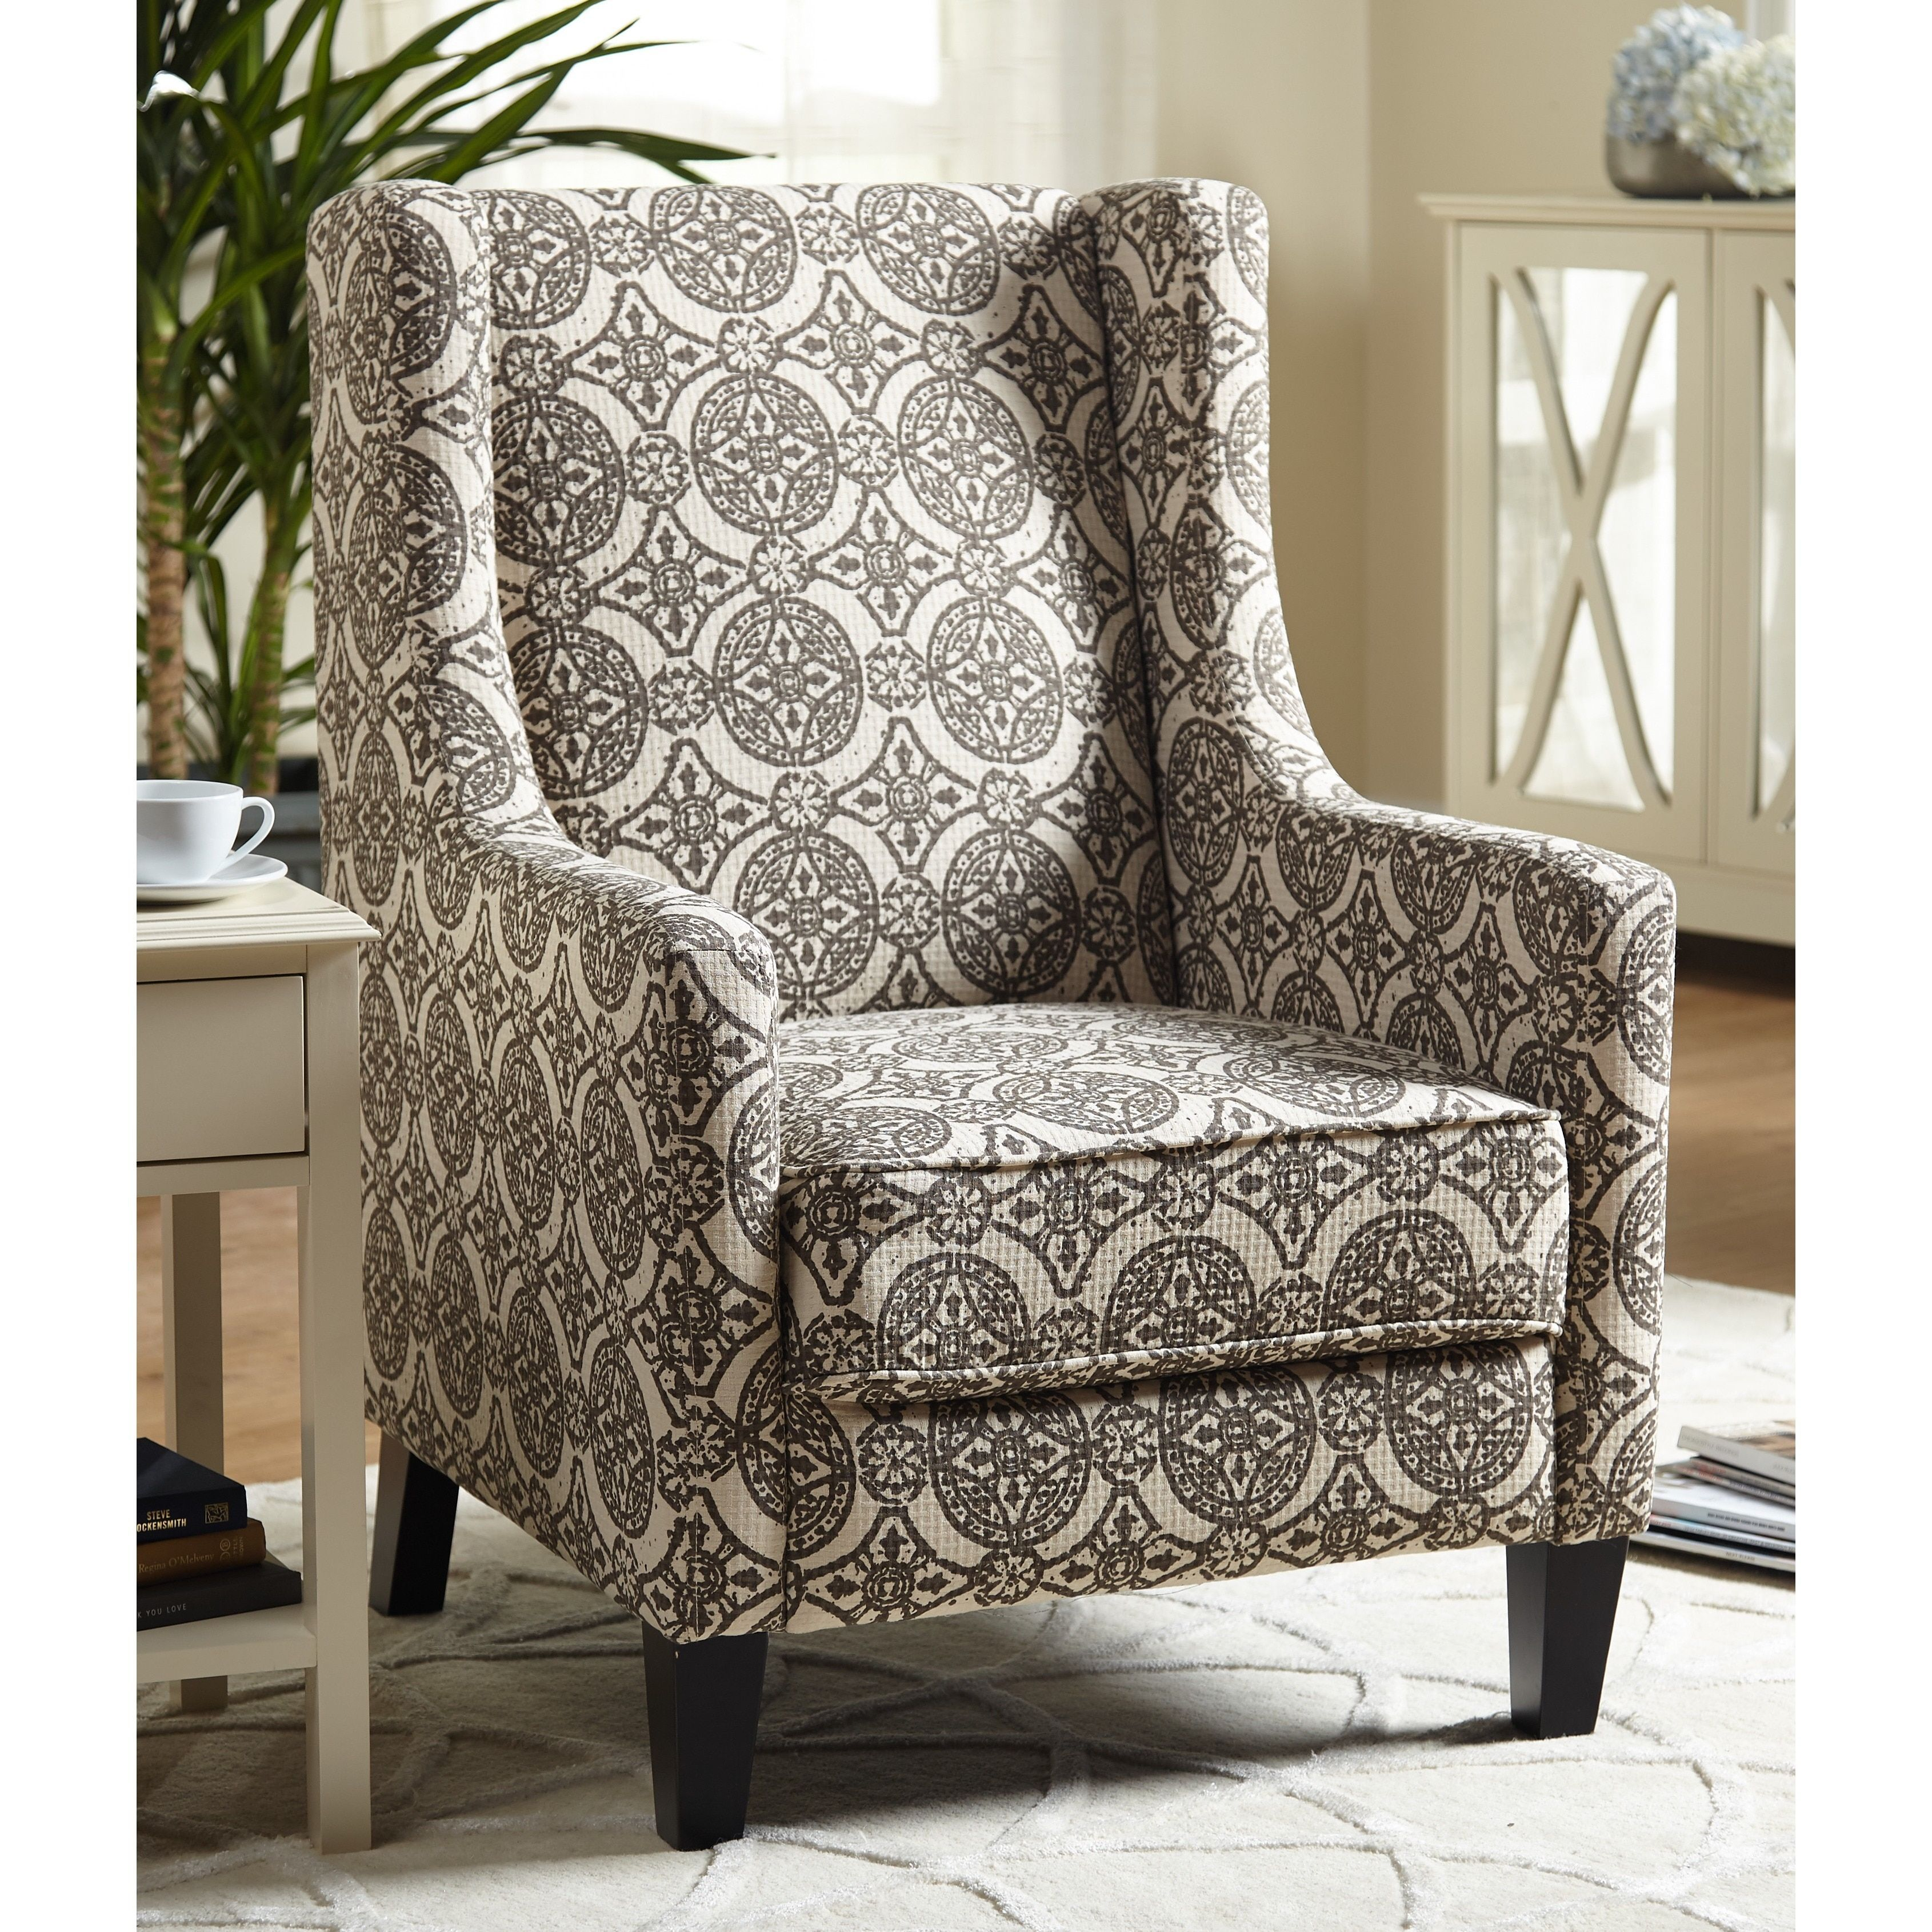 Simple Living Wing Accent Chair Off White And Dark Brown Geometric